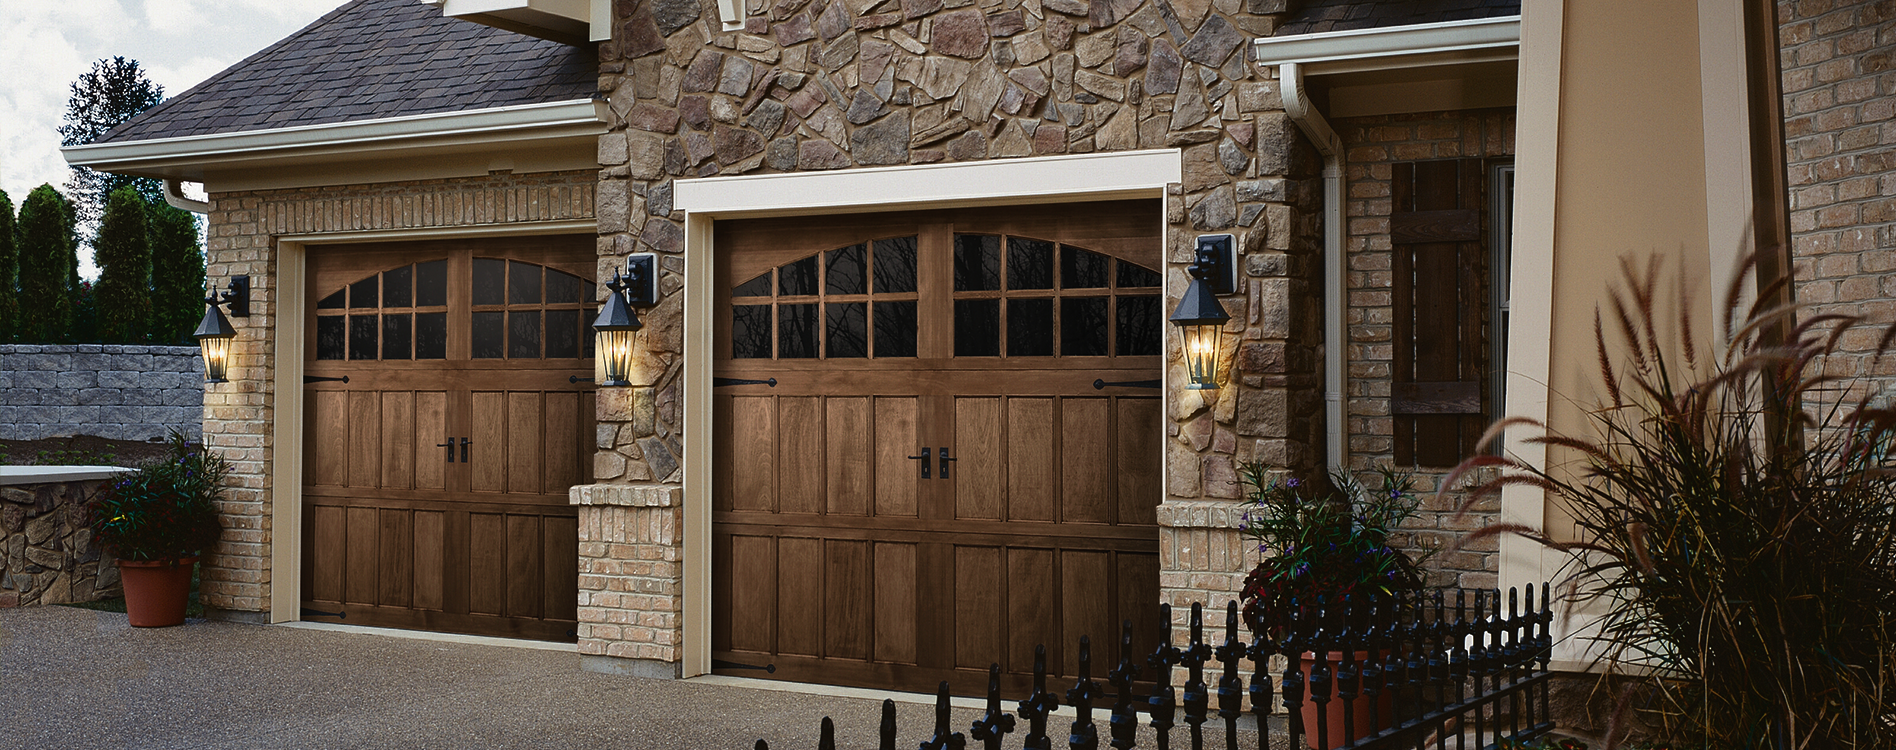 Sale new garage door in lilburn ga a team garage door for 2 door garage door